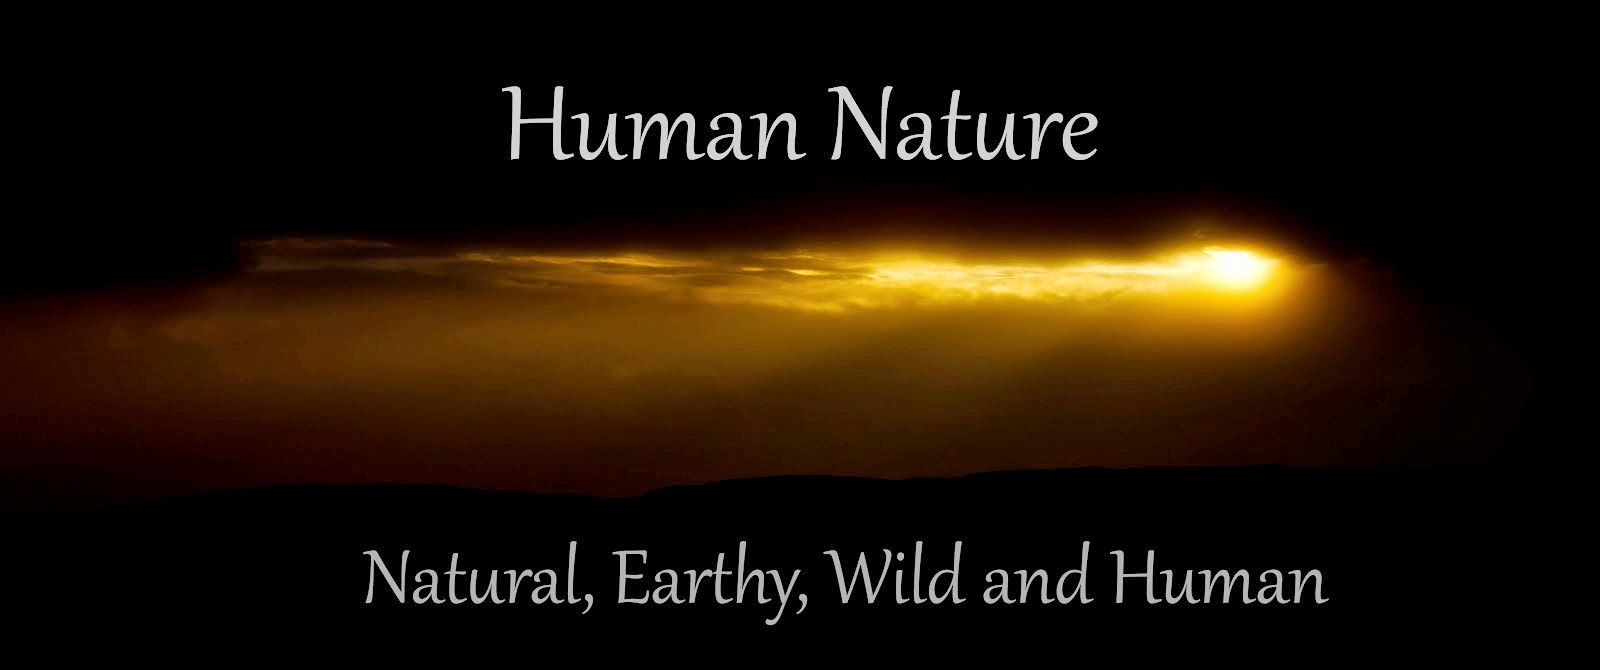 Human Nature - Kris Worsley Wildlife Photography